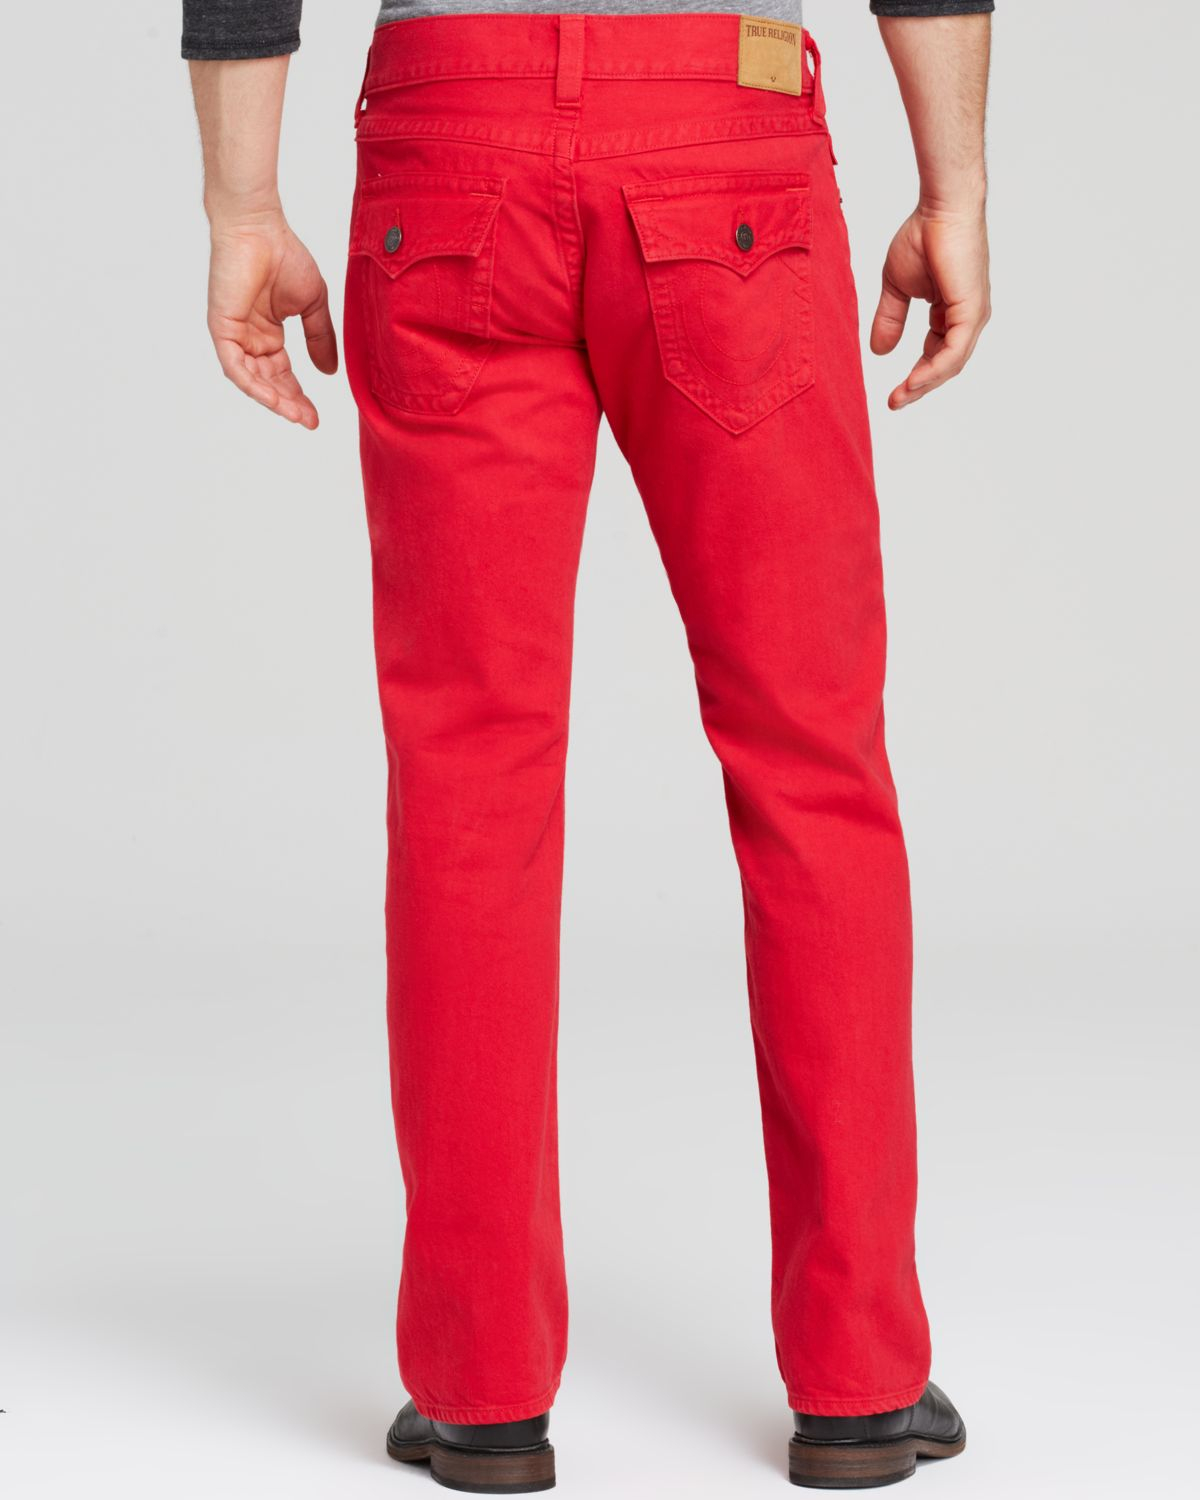 f666b4b22 True Religion Jeans - Ricky Straight Fit In True Red in Red for Men ...